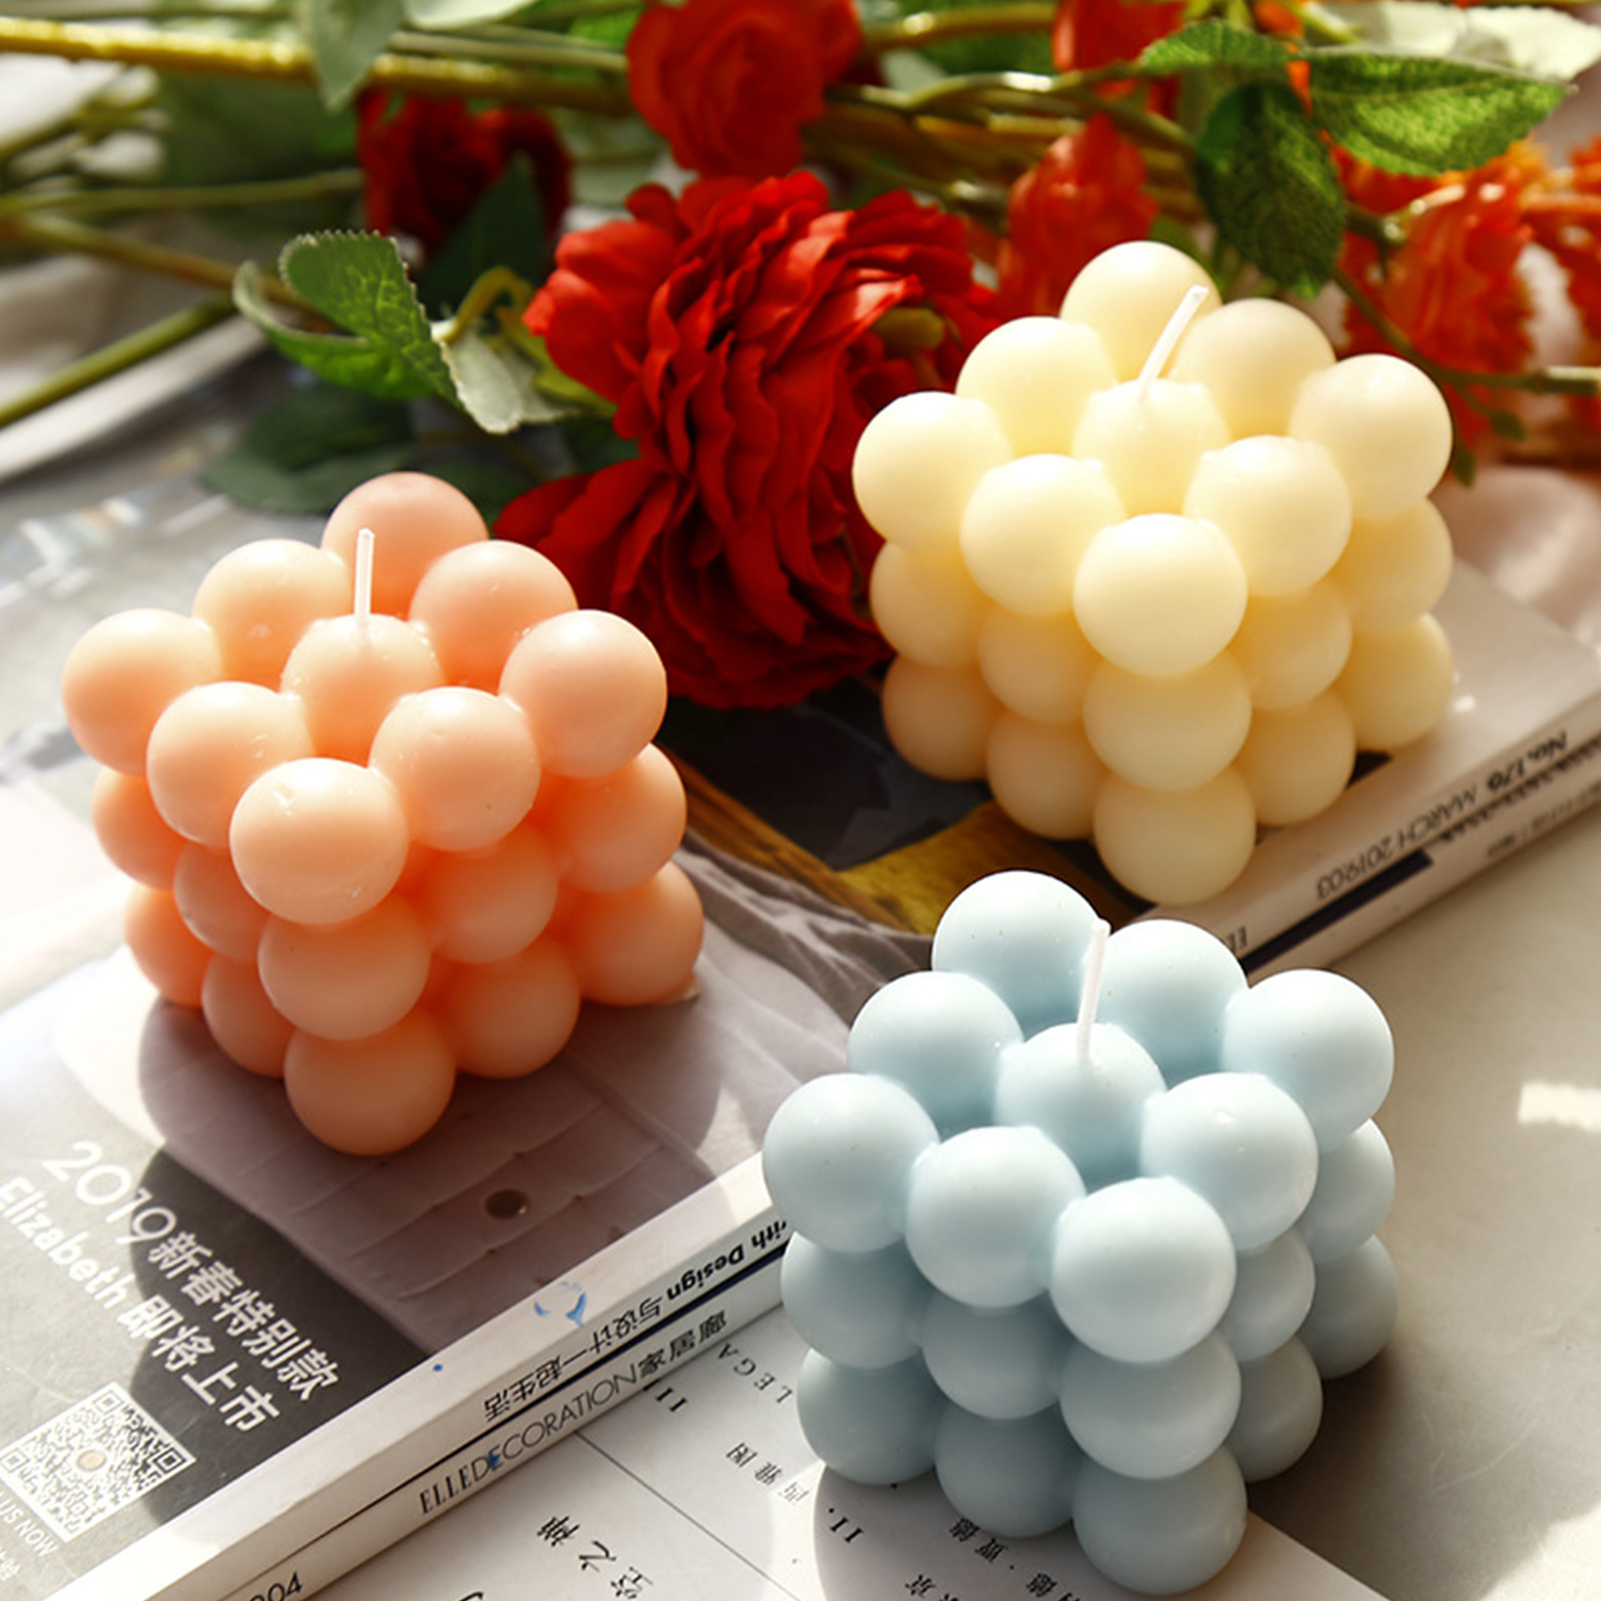 Bubble Cube Candle Soy Wax Aromatherapy Scented Candles Rose Vanilla Cream Campanula Freesia Fragrance Decorative Candle